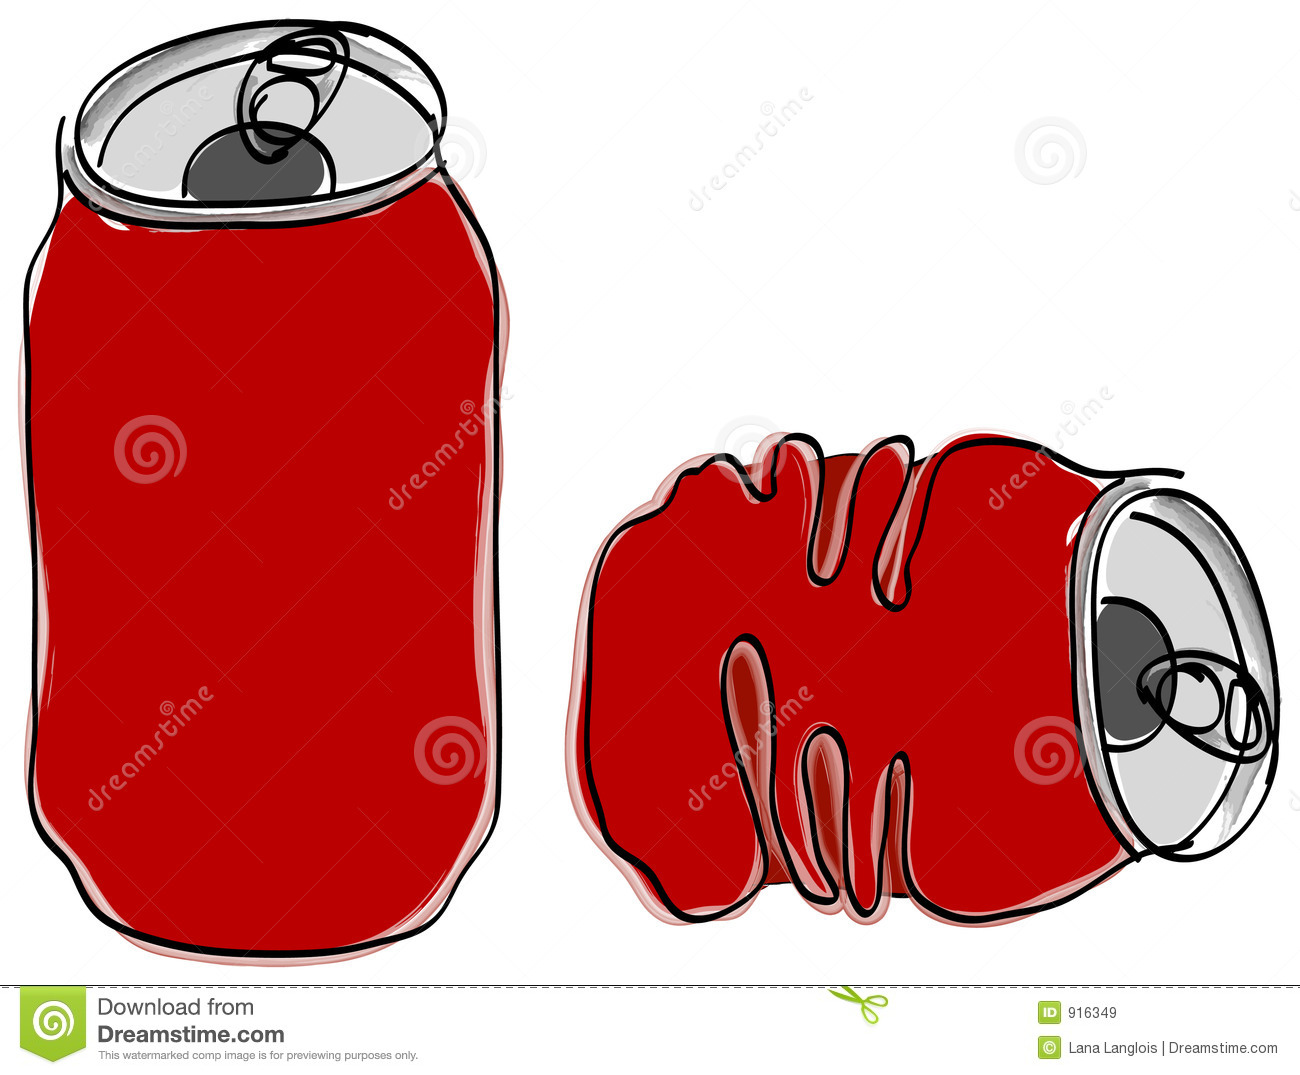 Soft-drink can stock vector. Illustration of carbohydrate - 916349